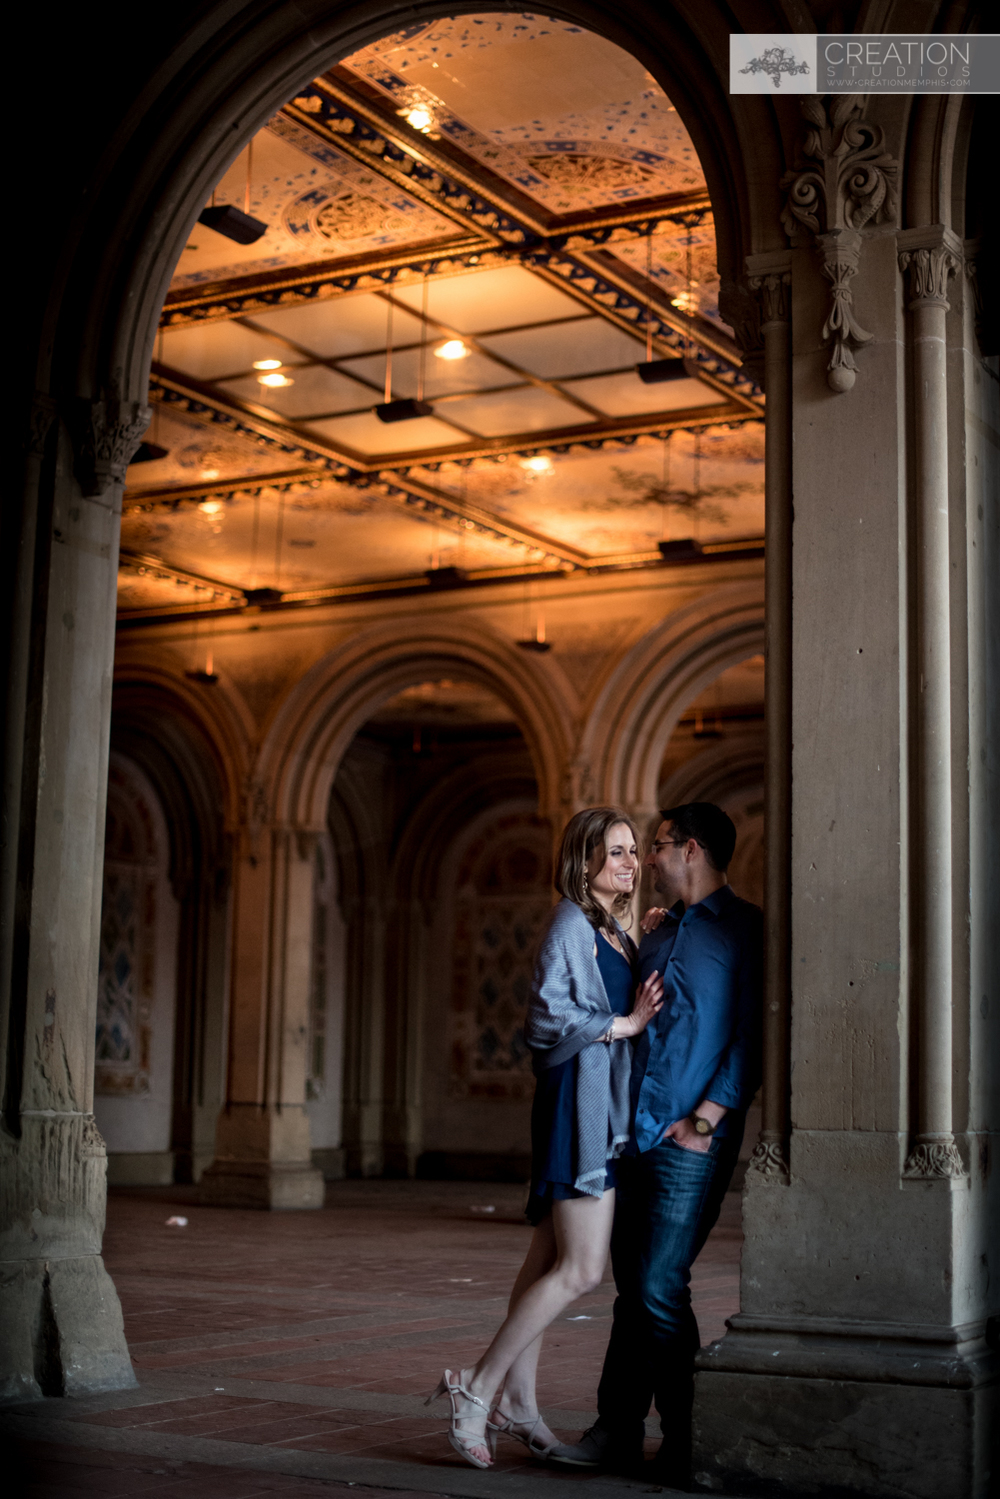 CreationStudios-NYC-Engagement-009.jpg